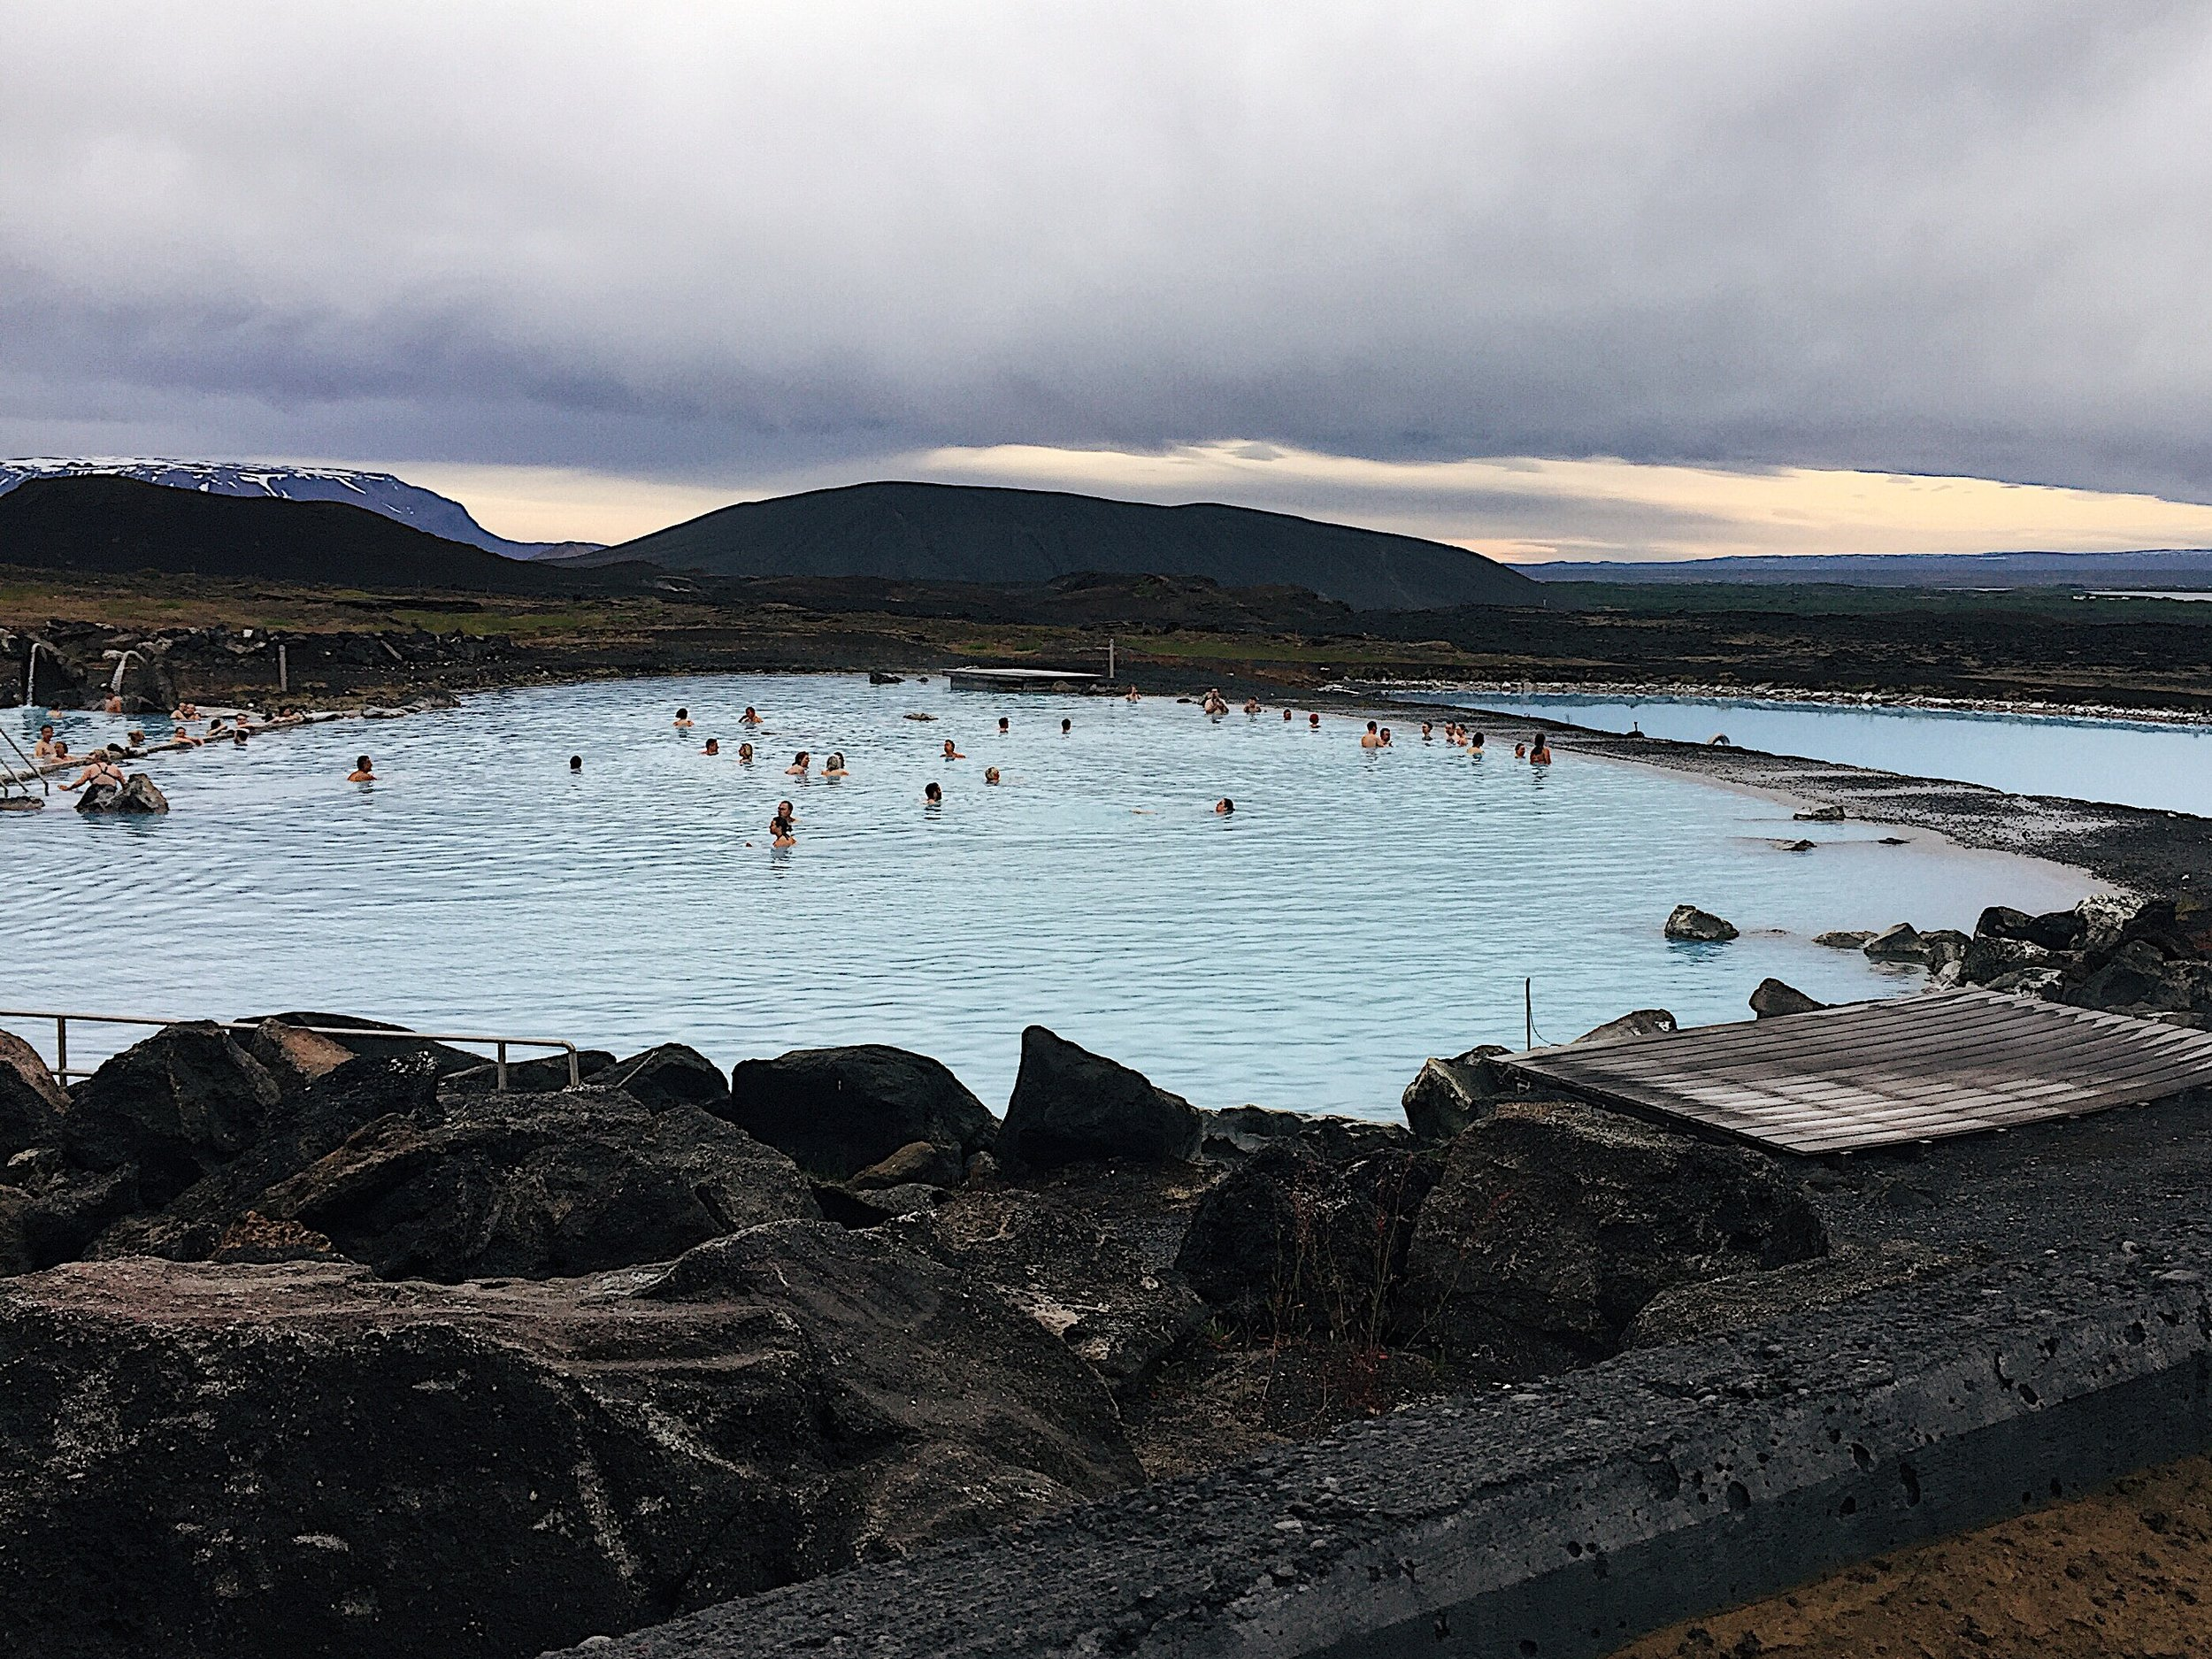 The Myvatn Nature Baths which is the Blue Lagoon of Northern Iceland. Beautiful, but lots of flies in the area though.